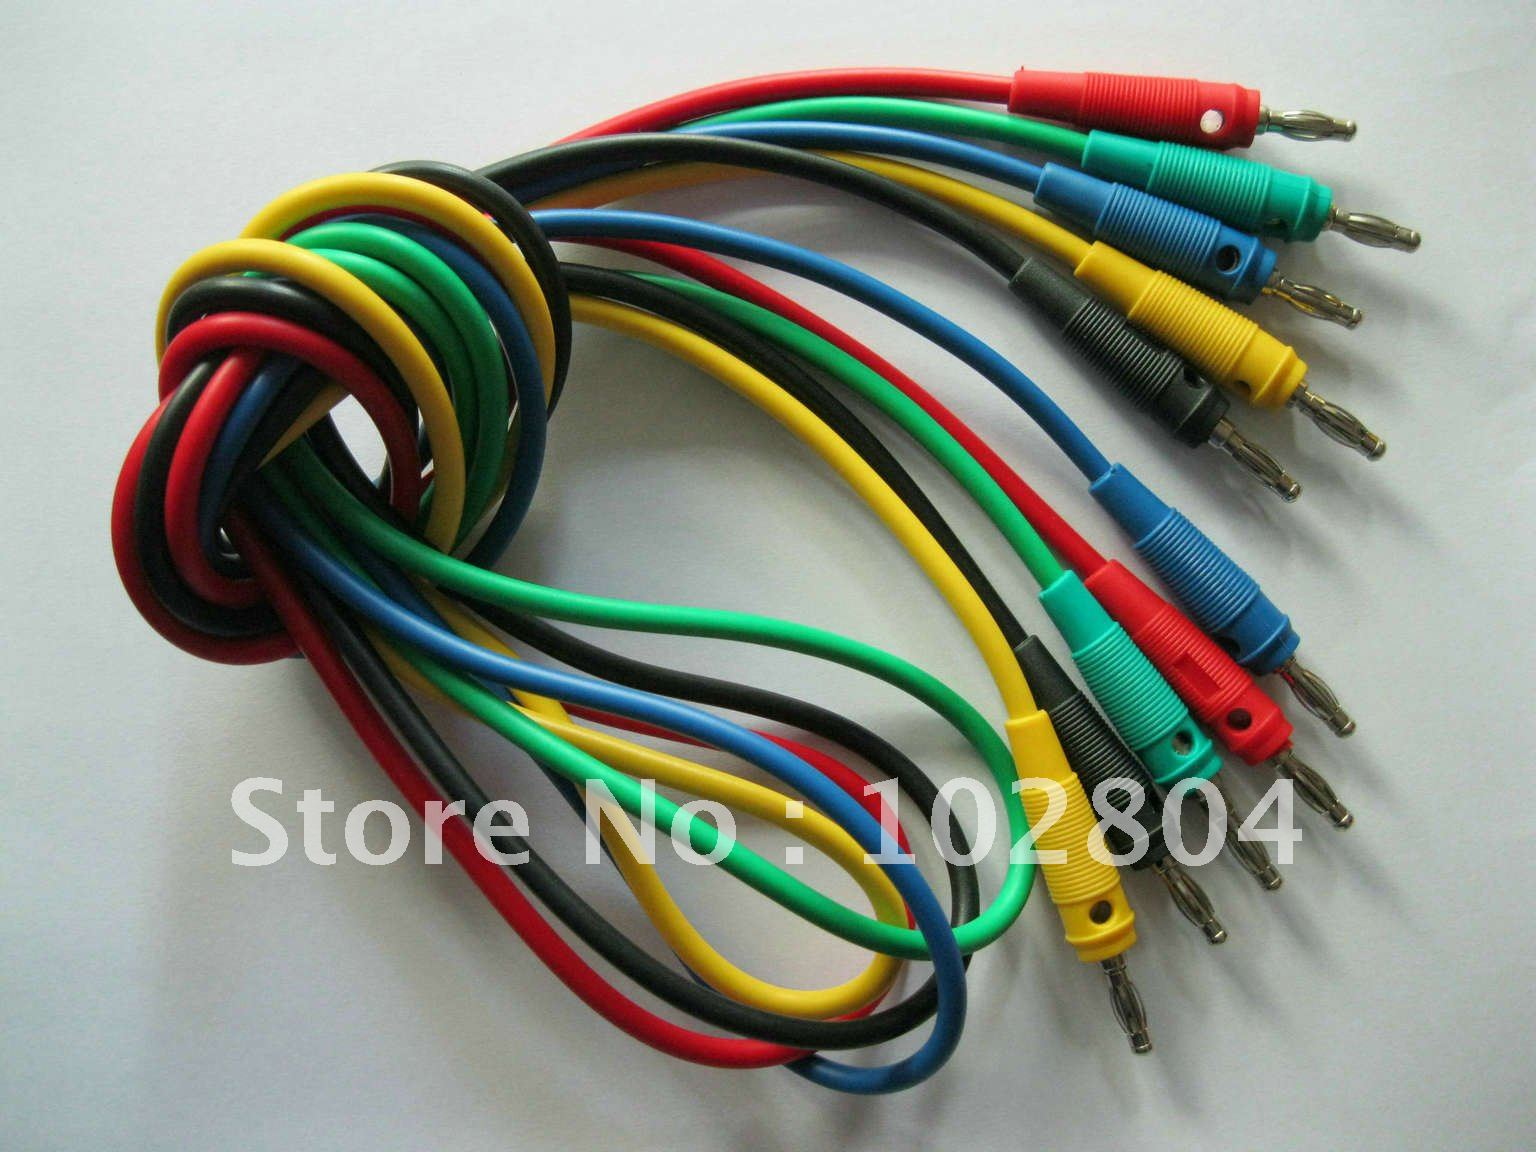 5 Set(25pcs) 5 Color Red & Black & Green & Yellow & Blue Banana plug of banana plug B type silicon lead test cable high voltage(China (Mainland))